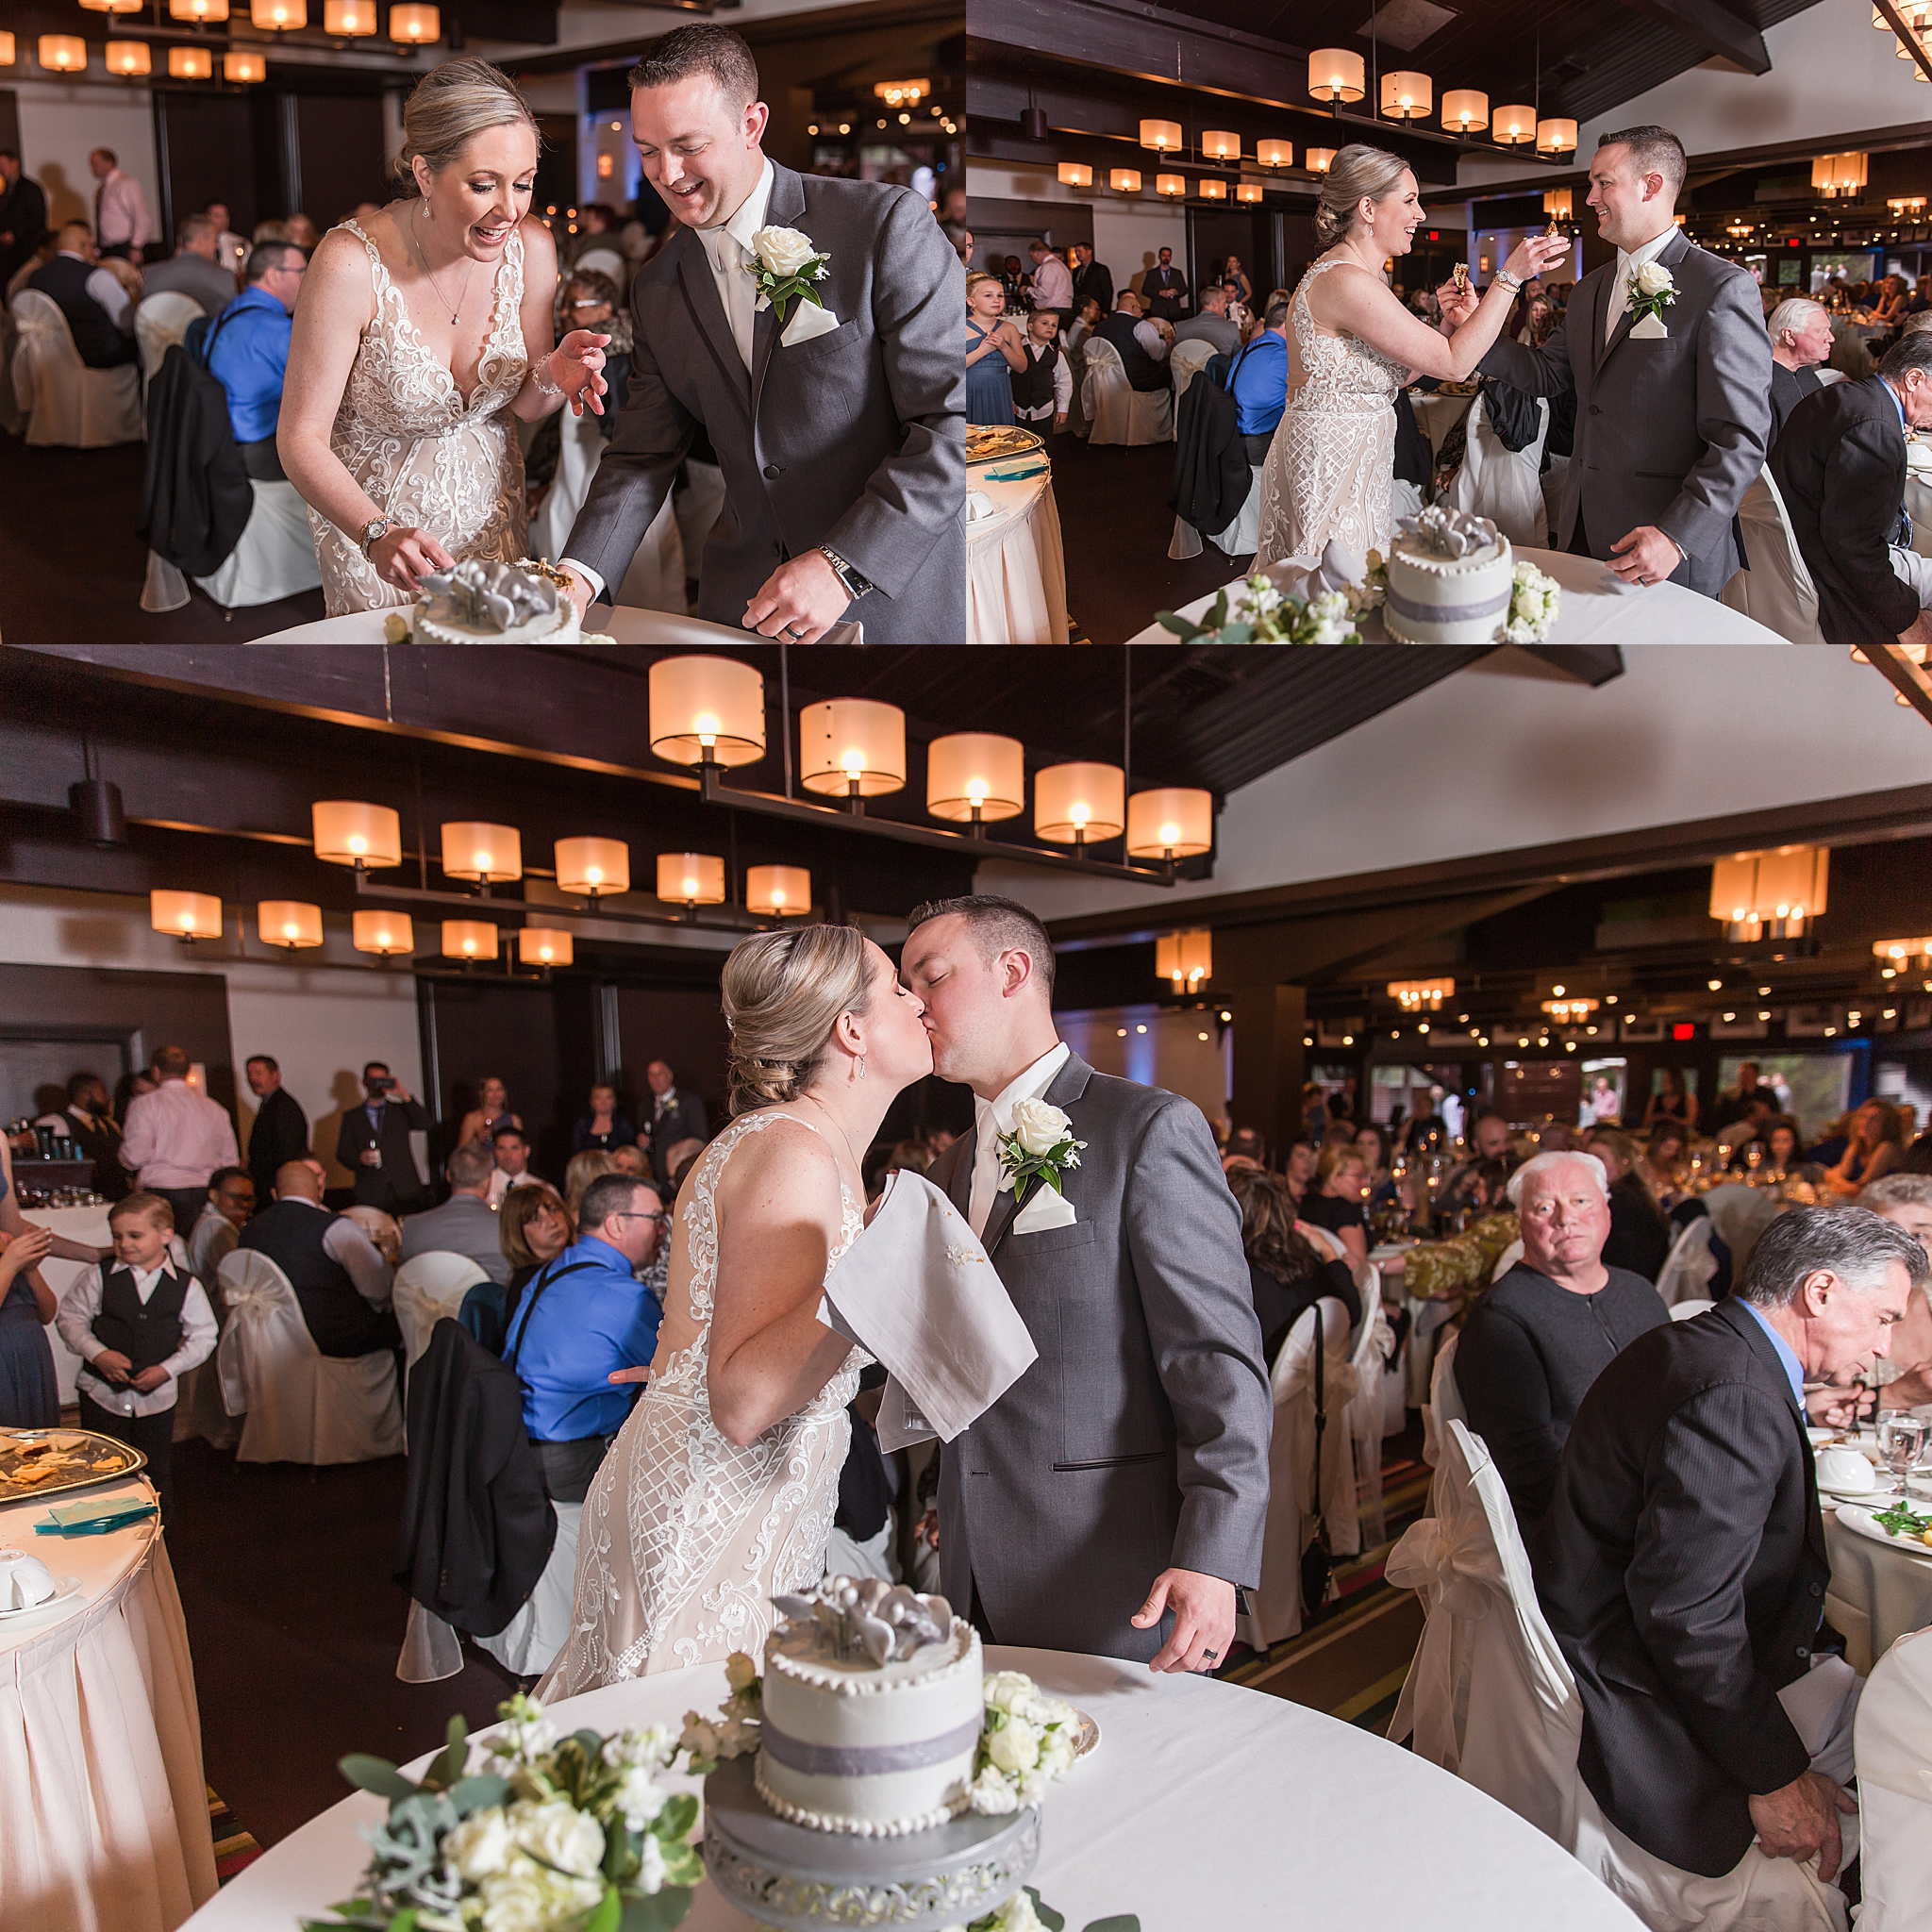 modern-romantic-wedding-photography-at-webers-in-ann-arbor-michigan-by-courtney-carolyn-photography_0077.jpg